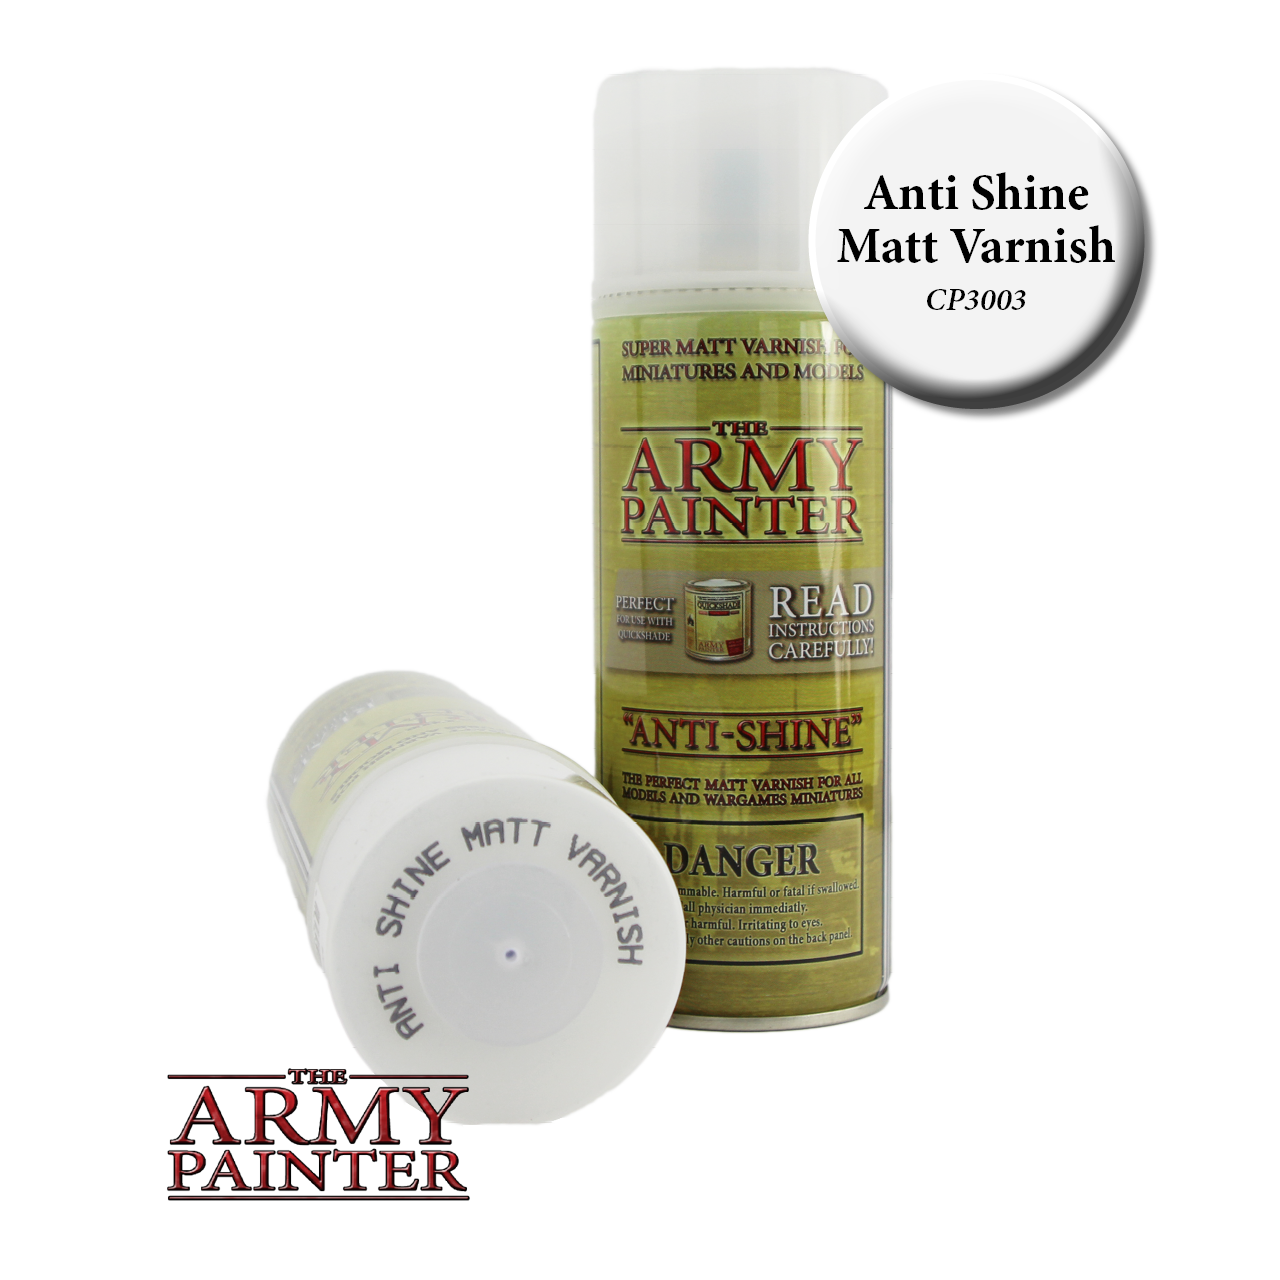 Anti Shine Matt Varnish | Mythicos